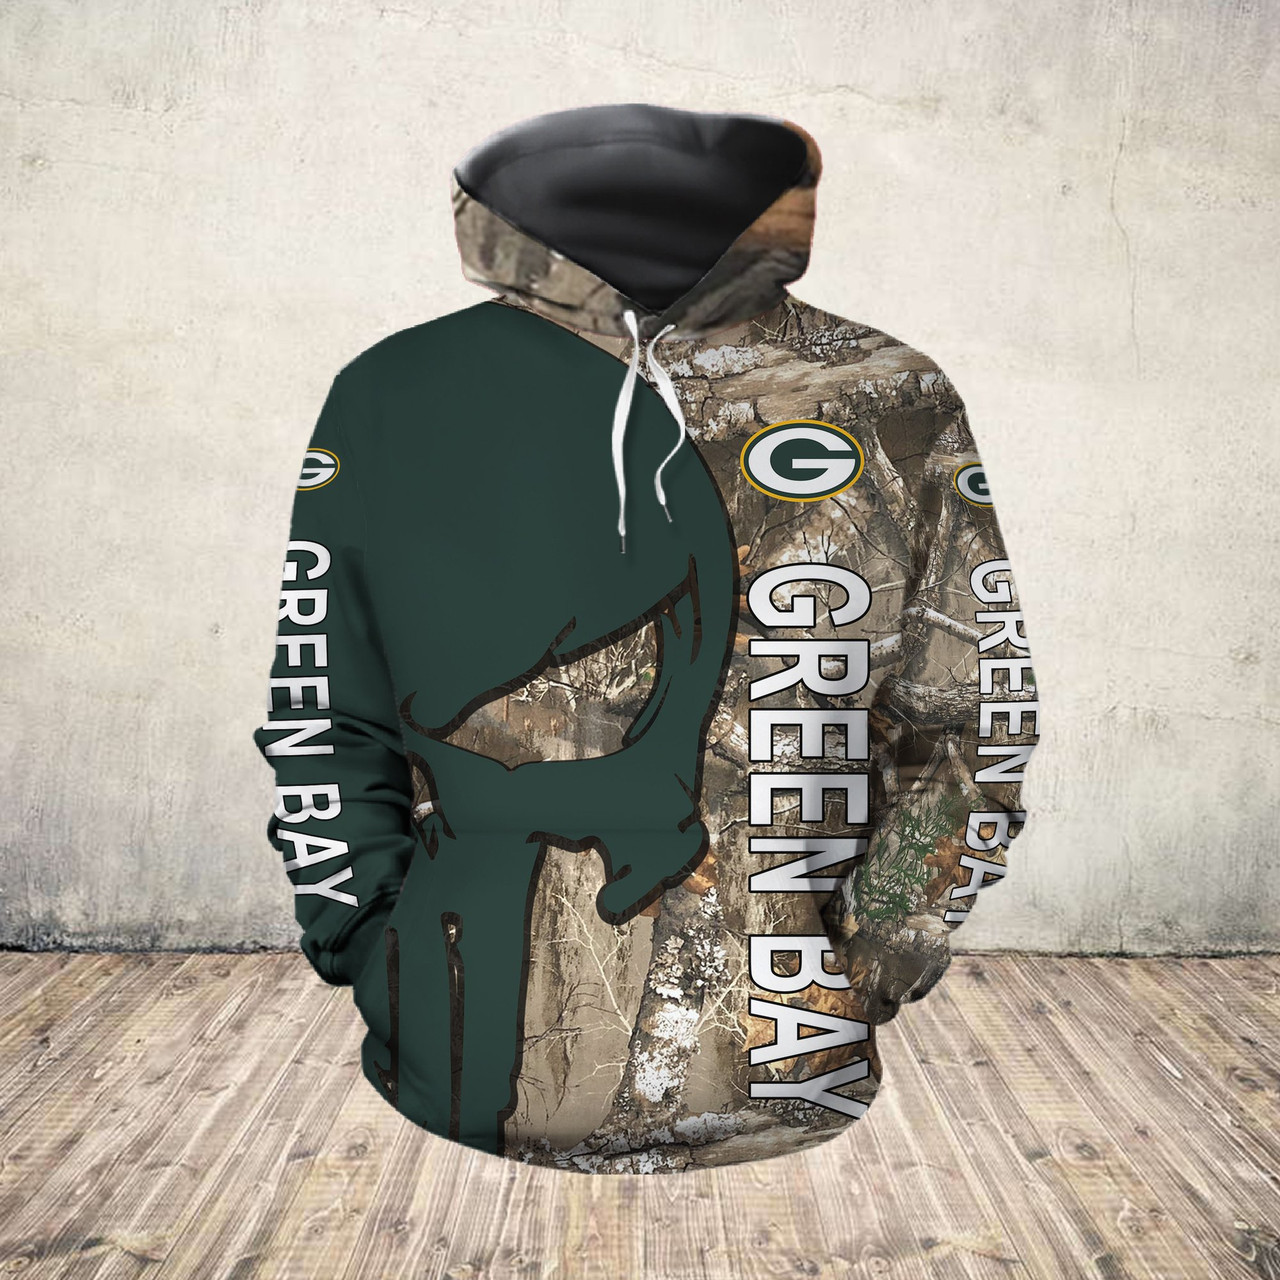 **(OFFICIAL-N.F.L.GREEN-BAY-PACKERS-PULLOVER-HOODIES/DETAILED-3D-CUSTOM-GRAPHIC-PRINTED-REAL-TREE-CAMO. PUNISHER-SKULL-DESIGN/OFFICIAL-CUSTOM-PACKERS-LOGOS & OFFICIAL-CLASSIC-PACKERS-COLORS/WARM-PREMIUM-PACKERS-GAME-DAY-TEAM-PULLOVER-HOODIES)**